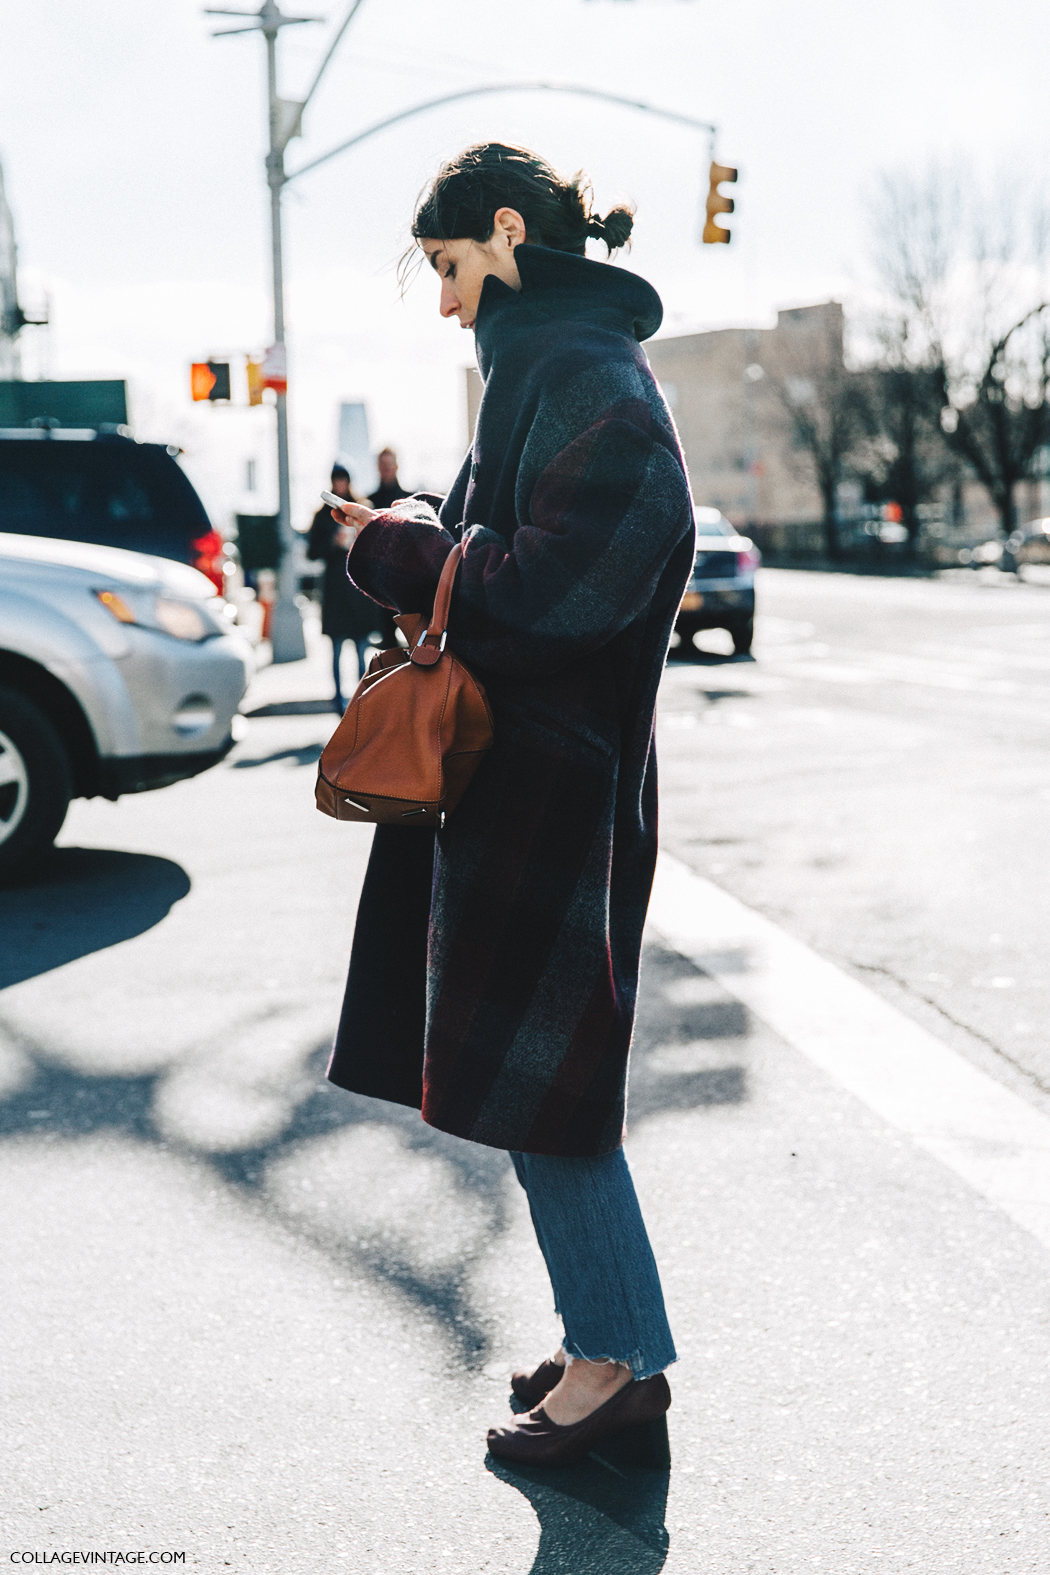 NYFW-New_York_Fashion_Week-Fall_Winter-17-Street_Style-Tartan_Coat-Loewe_Puzzle_Bag-Celine_Shoes-1